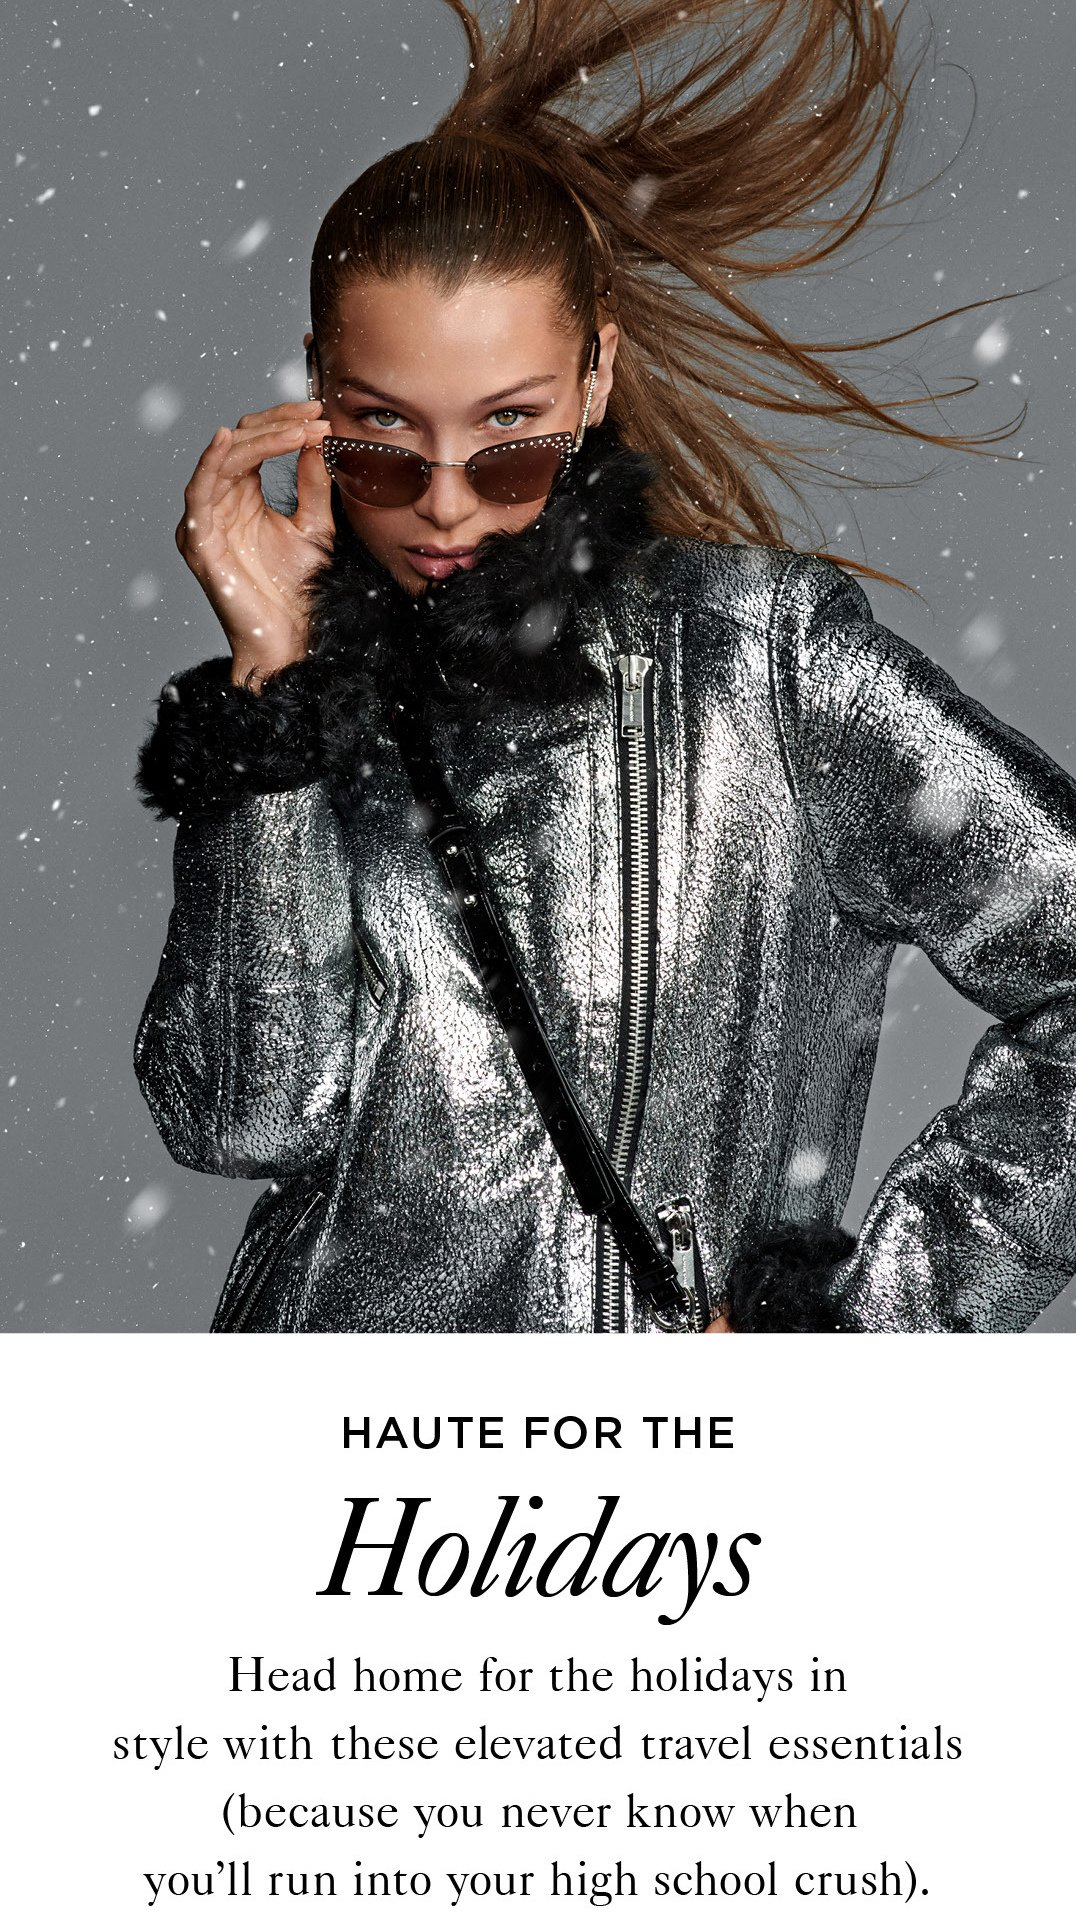 HAUTE FOR THE HOLIDAYS Head home for the holidays in style with these elevated travel essentials (because you never know when you'll run into your high school crush).